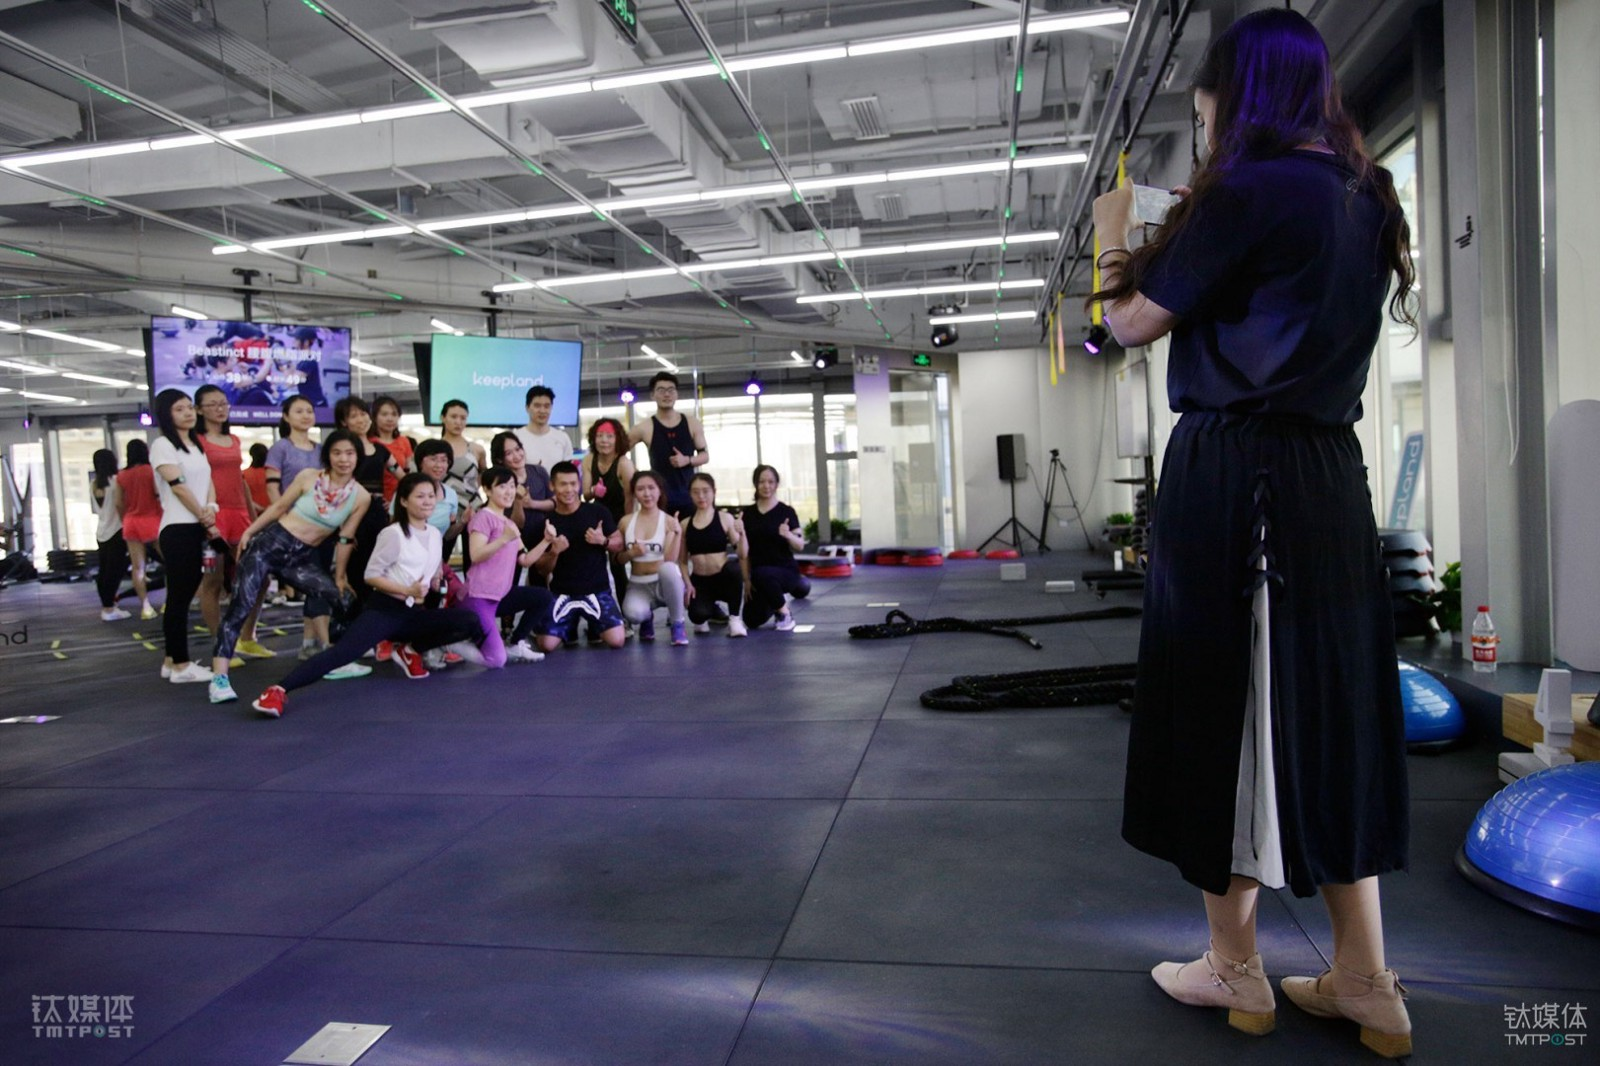 Keepland The Offline Gym Of Chinas Fitness App Keep Heartratenotesforbasiccircuittrainingjpg After Each Class Instructors Get Everyone Together To Take A Picture And Invite New Students Wechat Group Where Can Share Their